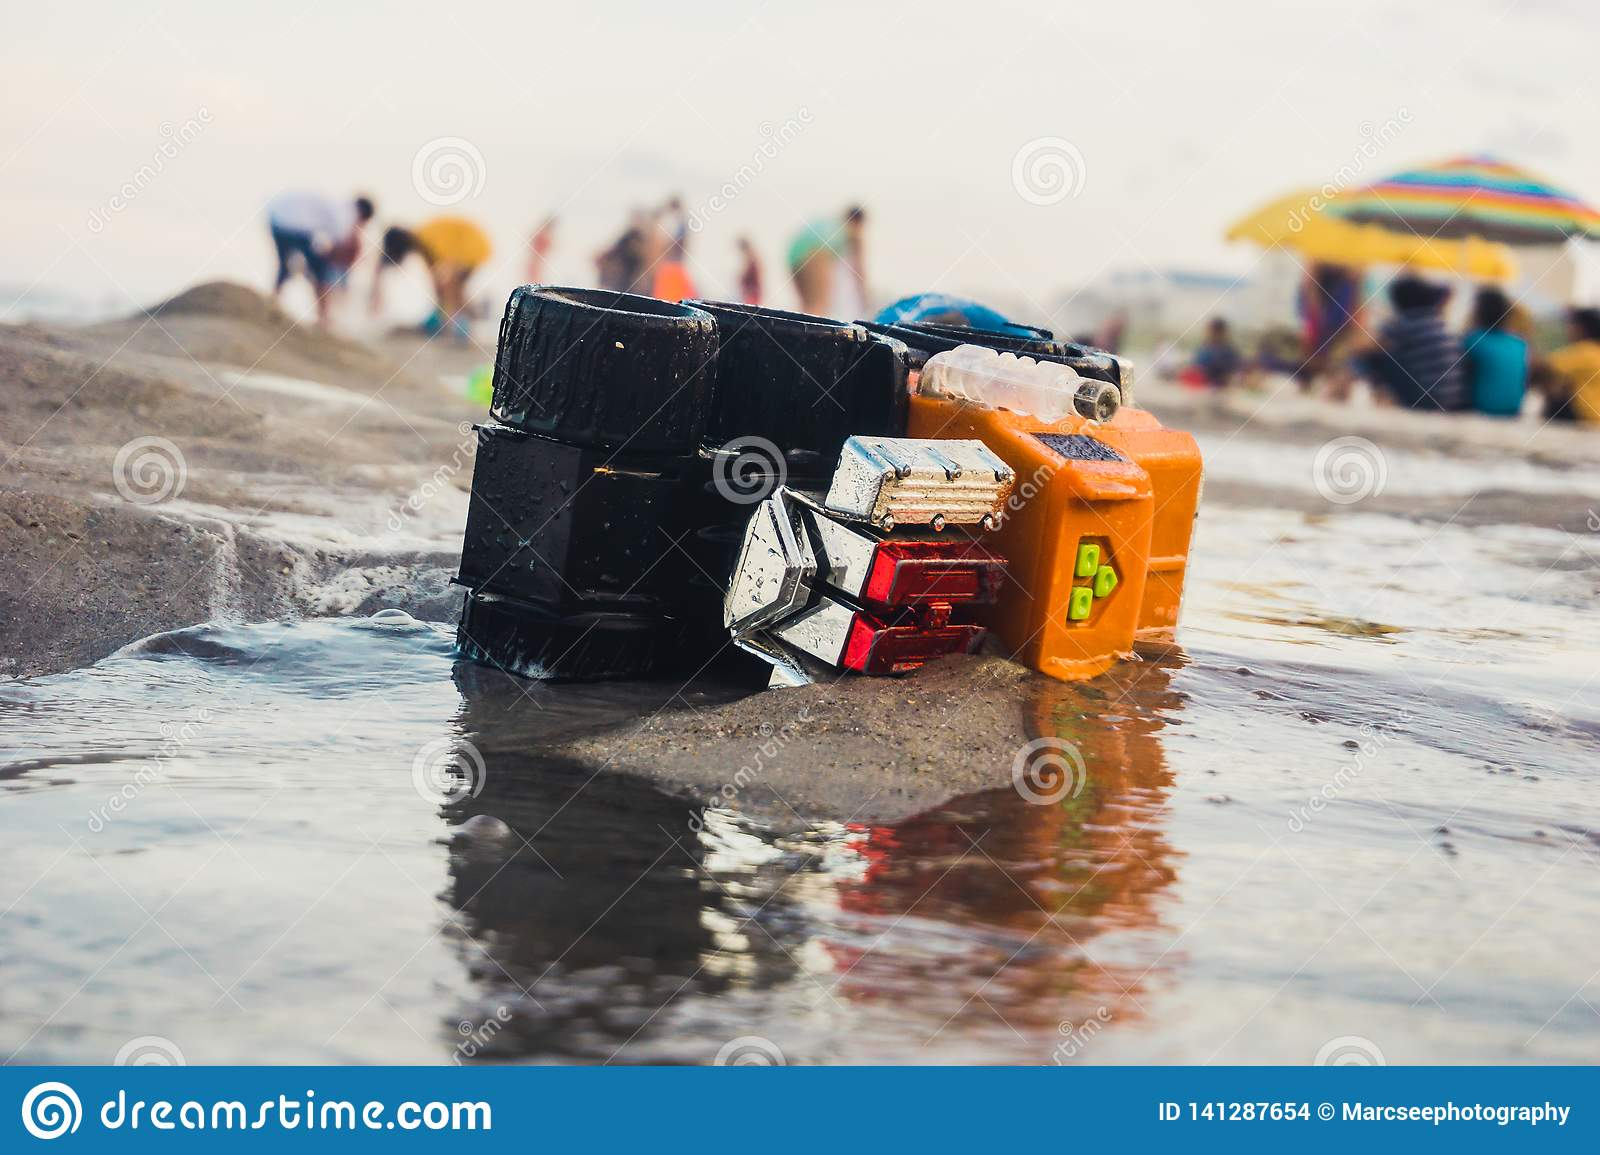 Toy Truck Washed Ashore